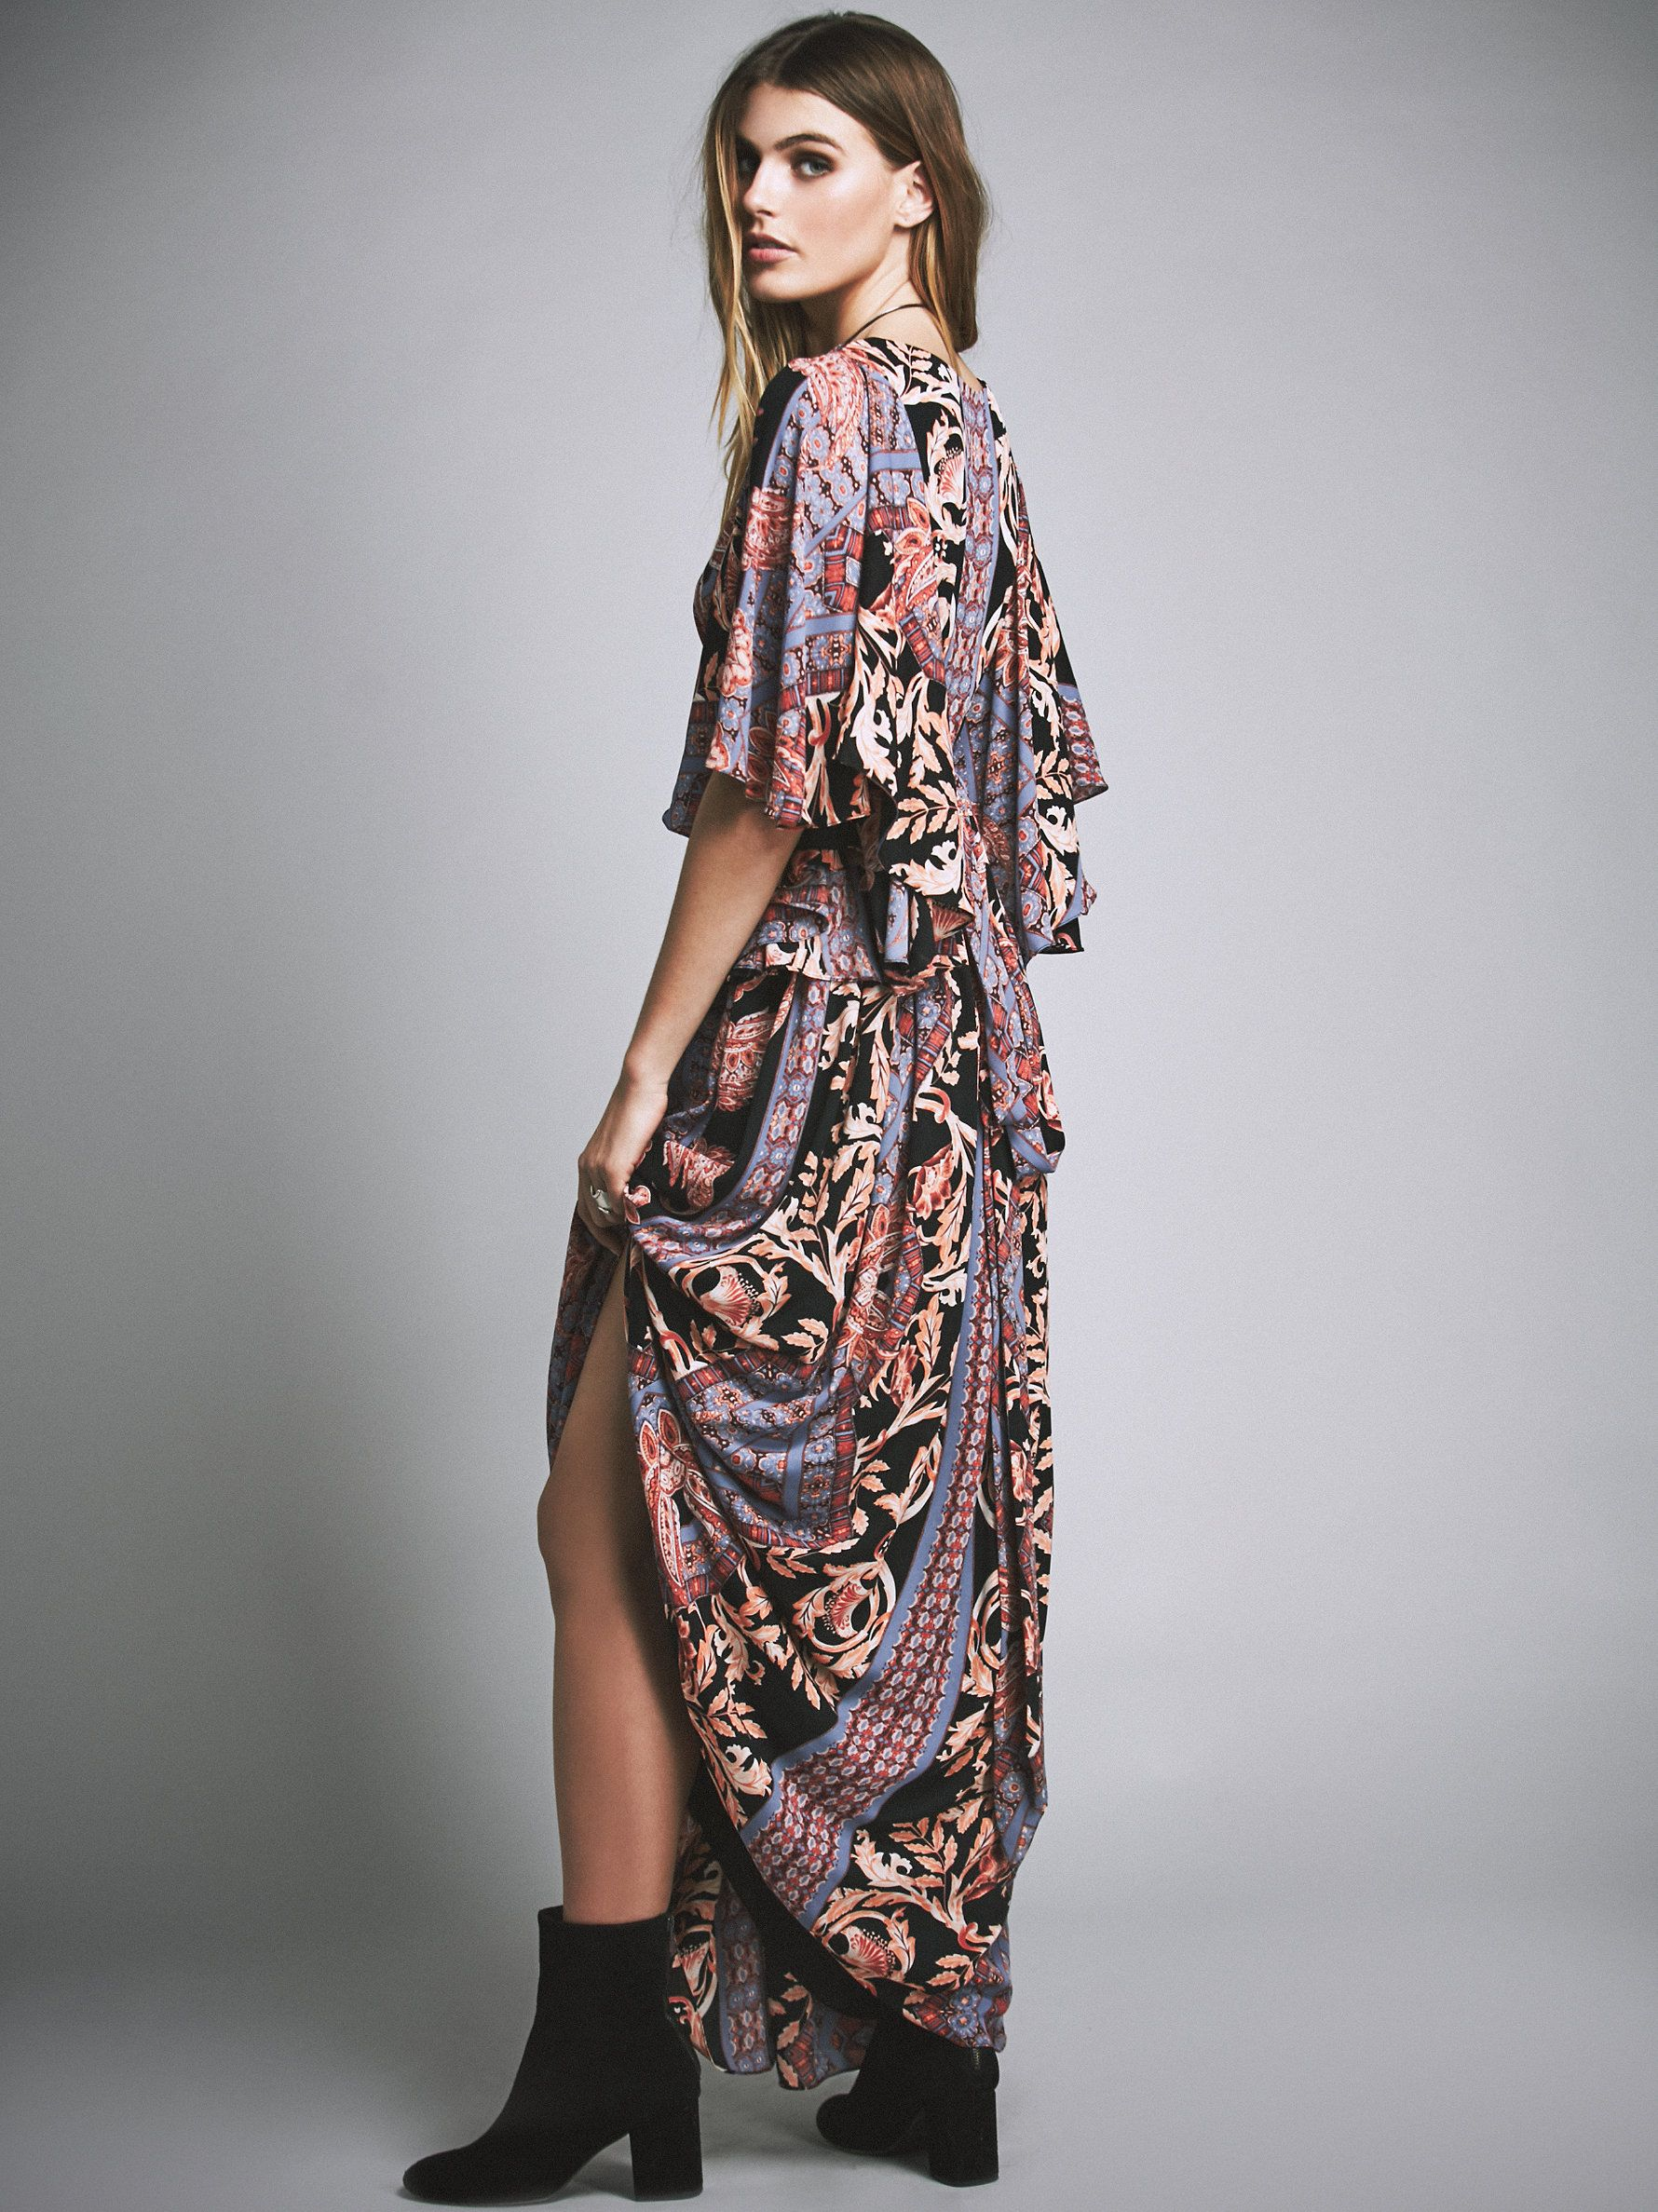 b1abaf308 Free People Printed Fern Maxi Party Dress, $350.00 | I <3 Clothes